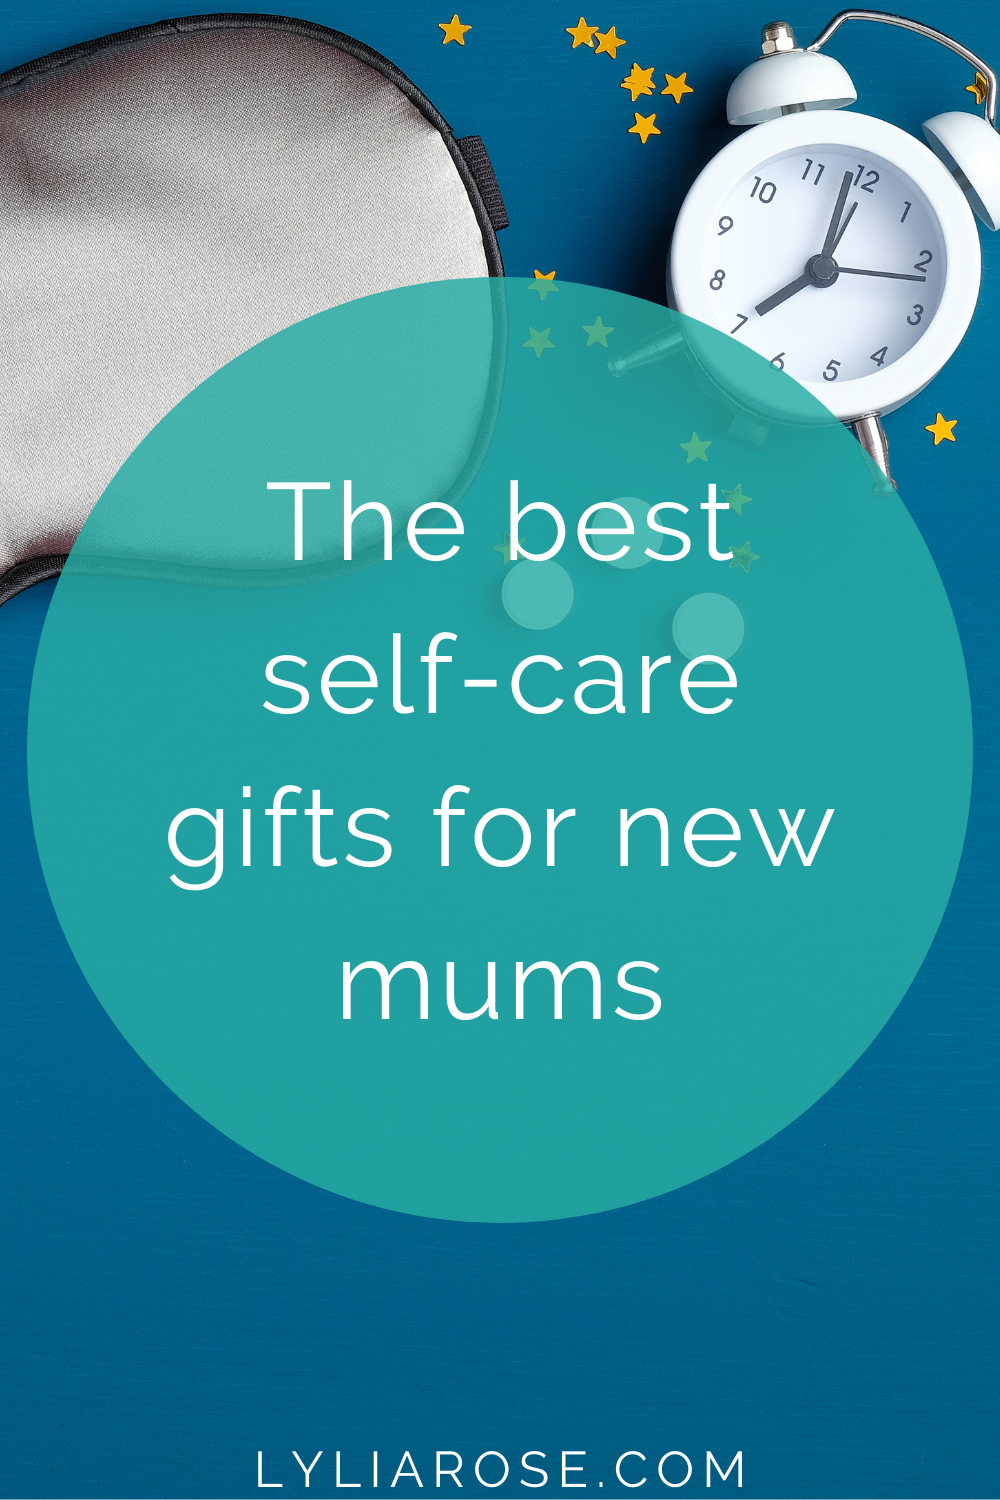 The best self-care gifts for new mums